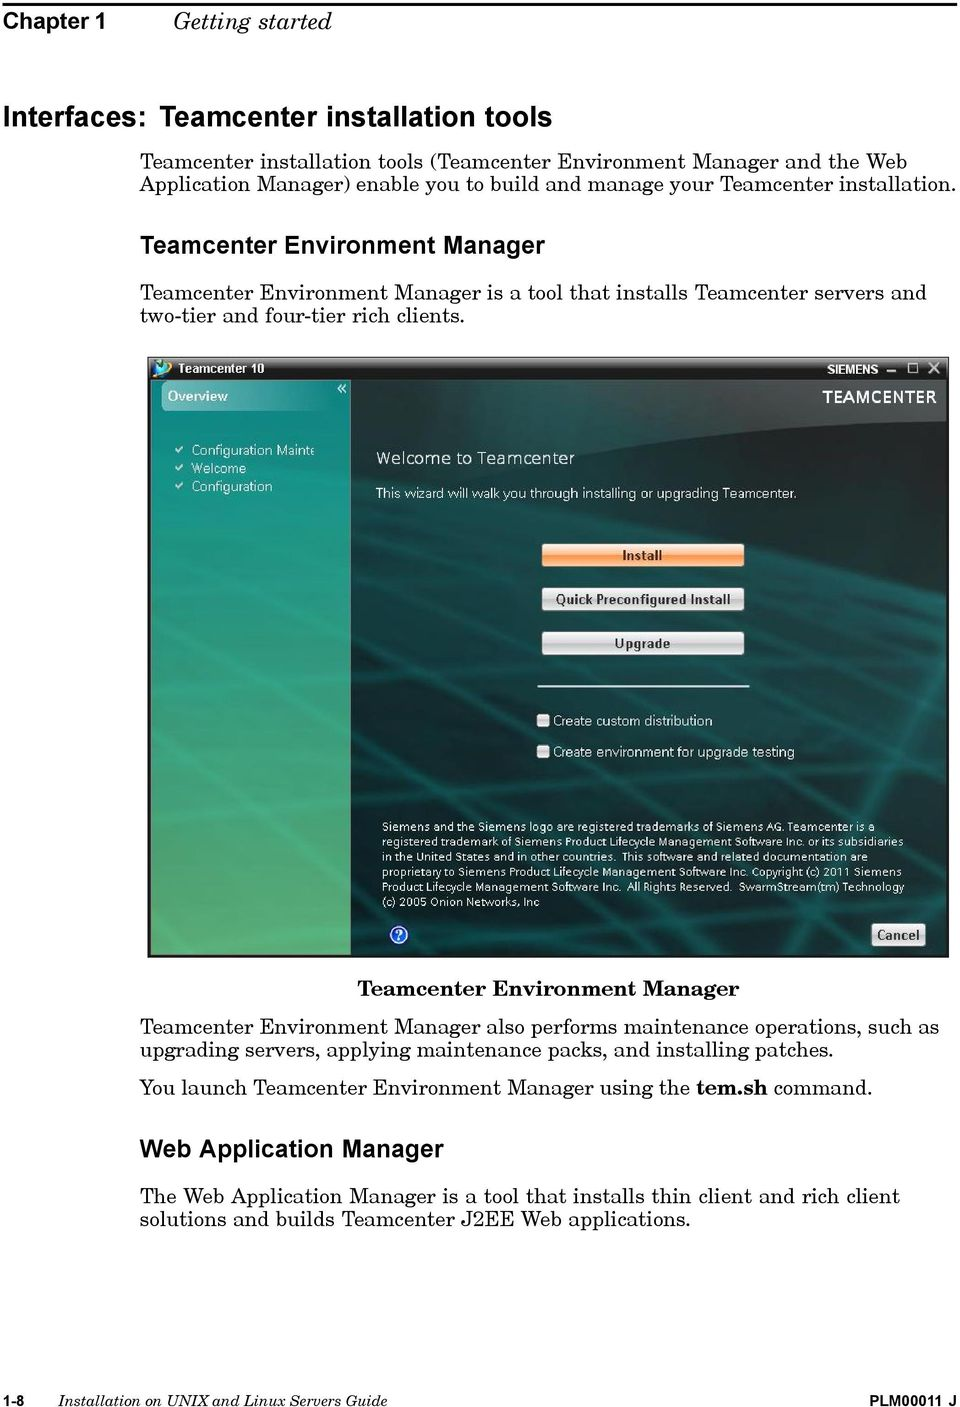 Teamcenter Environment Manager Teamcenter Environment Manager also performs maintenance operations, such as upgrading servers, applying maintenance packs, and installing patches.